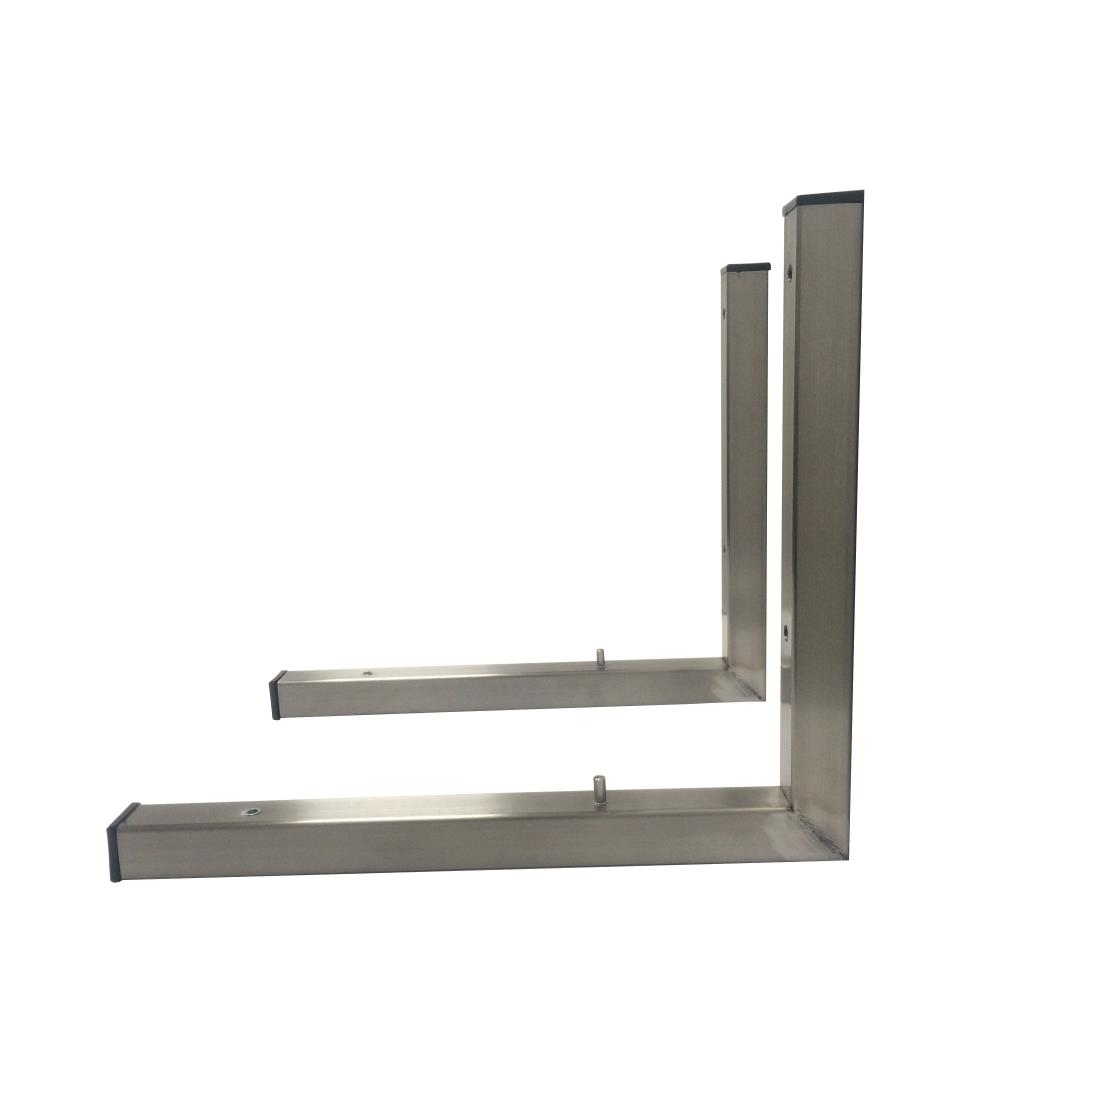 Image of Parry Wall Brackets for Salamander Grill